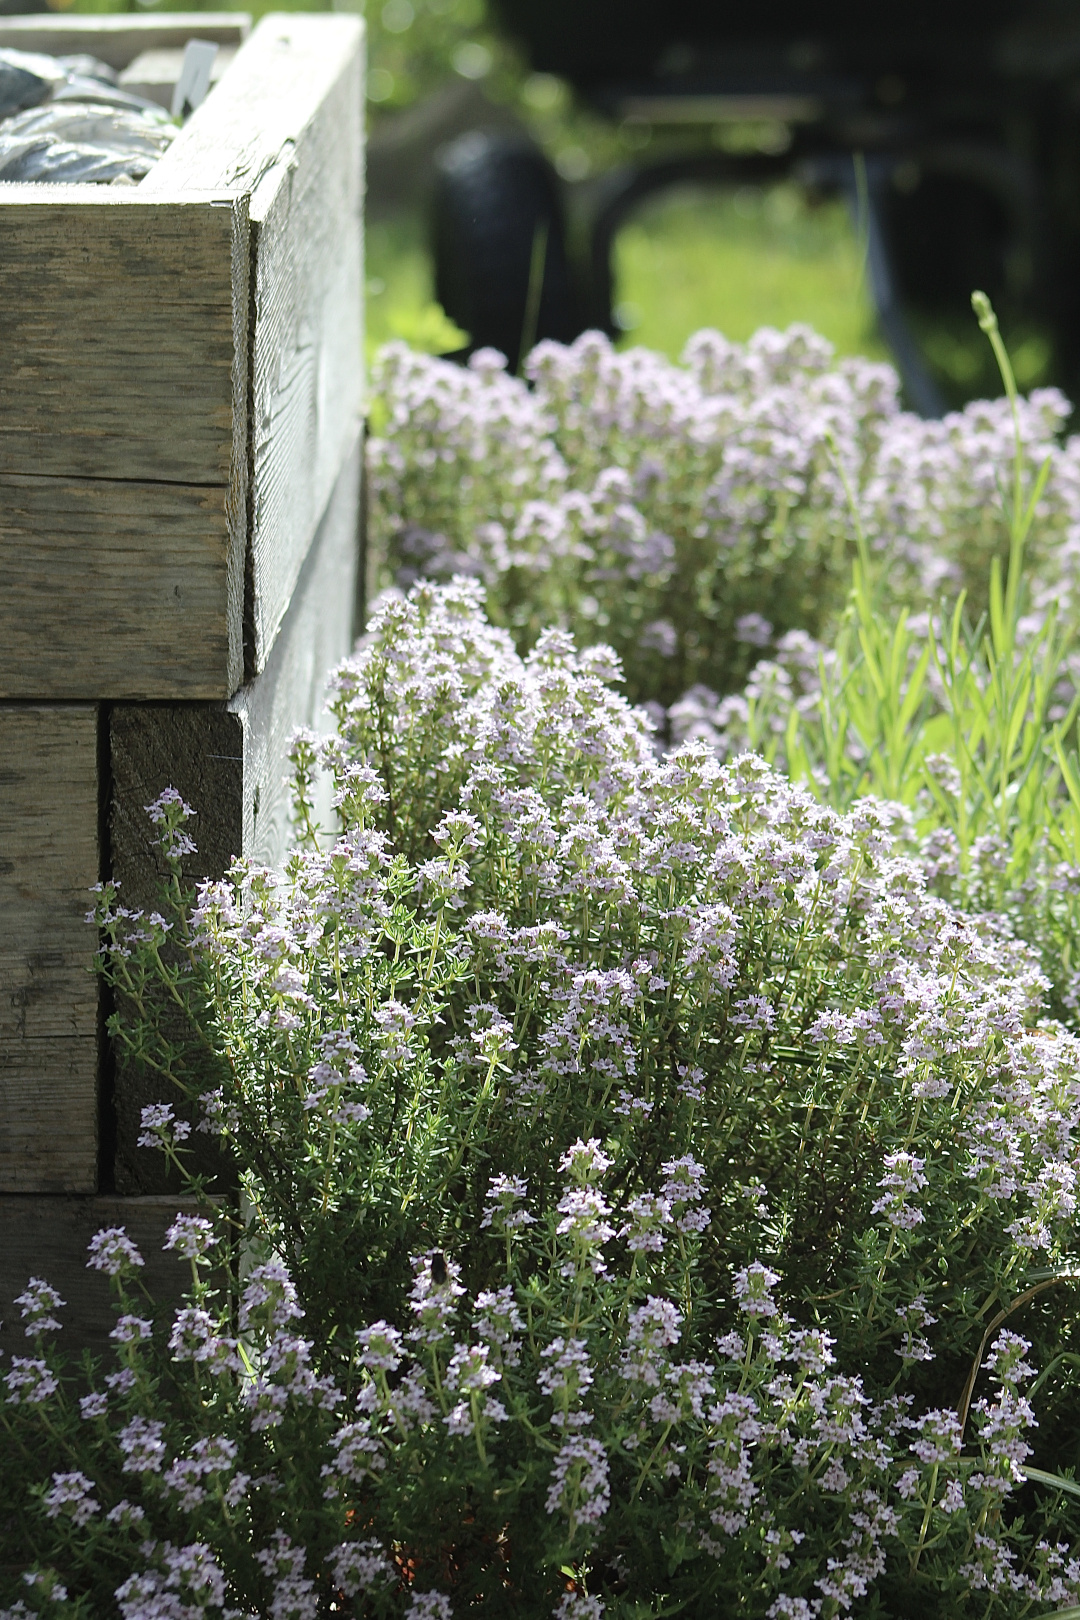 Blooming thyme